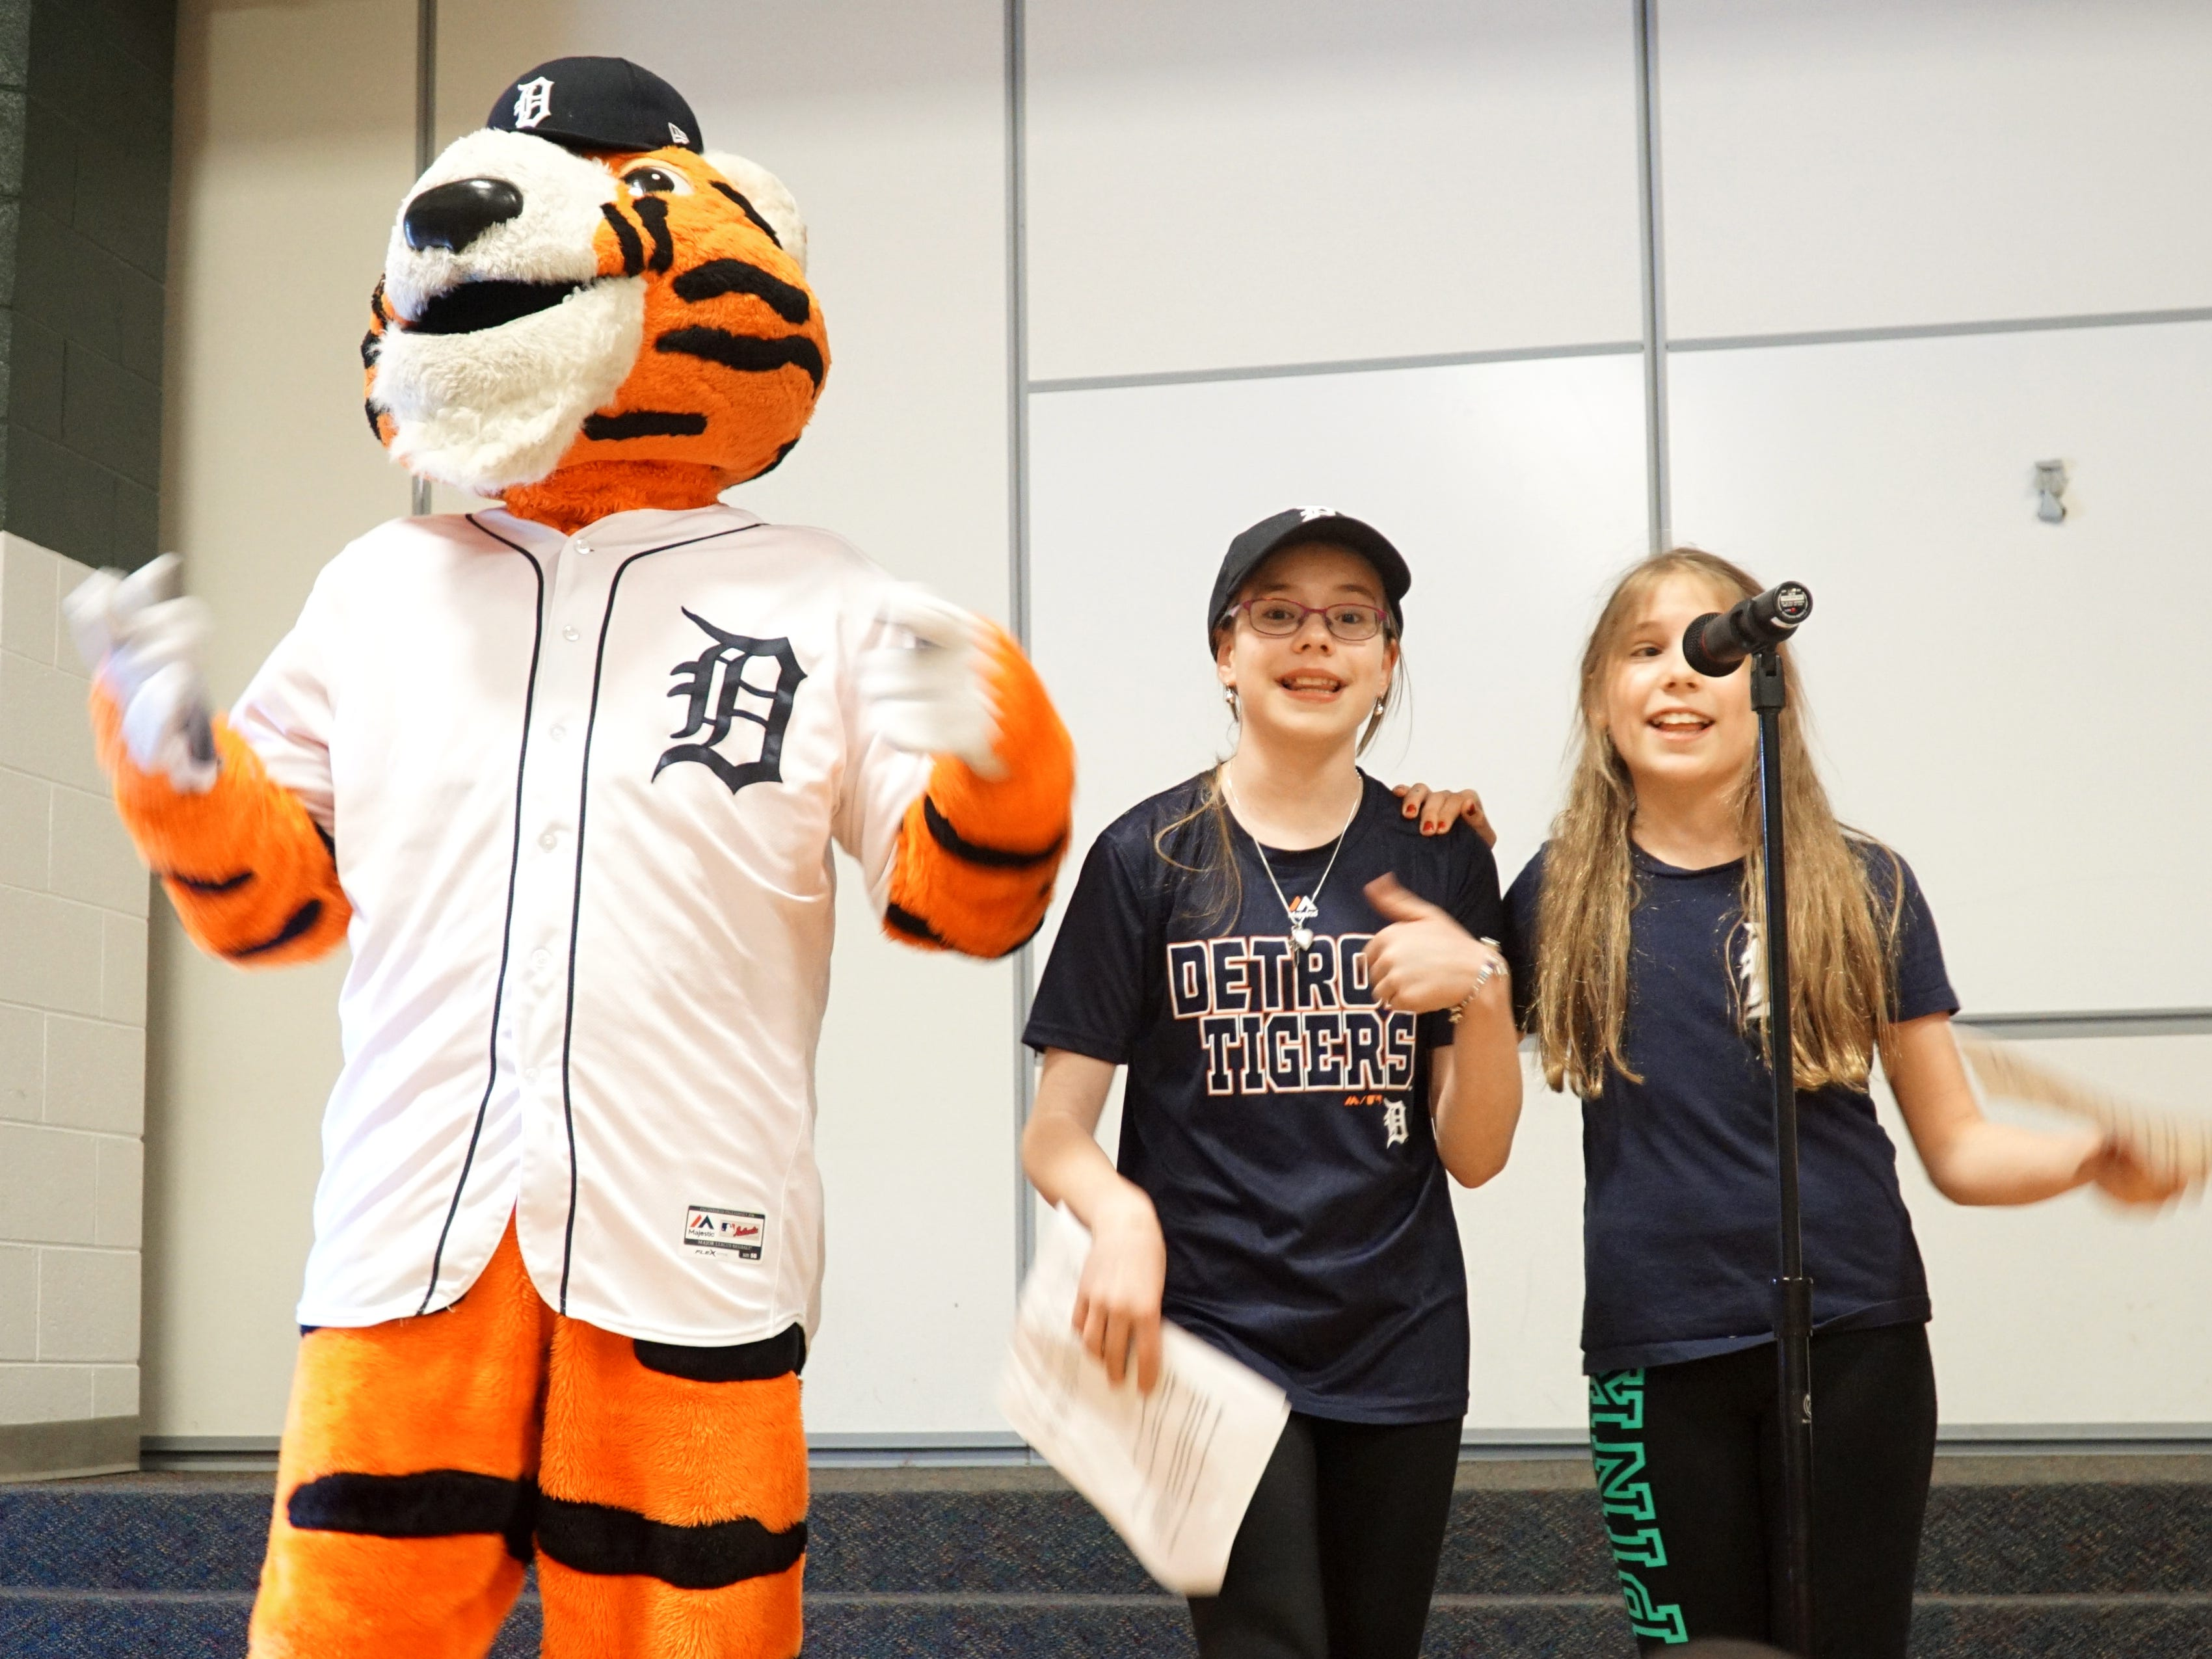 When Tigers' mascot Paws joined MCs Tricia Beattie and Margo Kaledas, right, Principal Learned knew something was up.